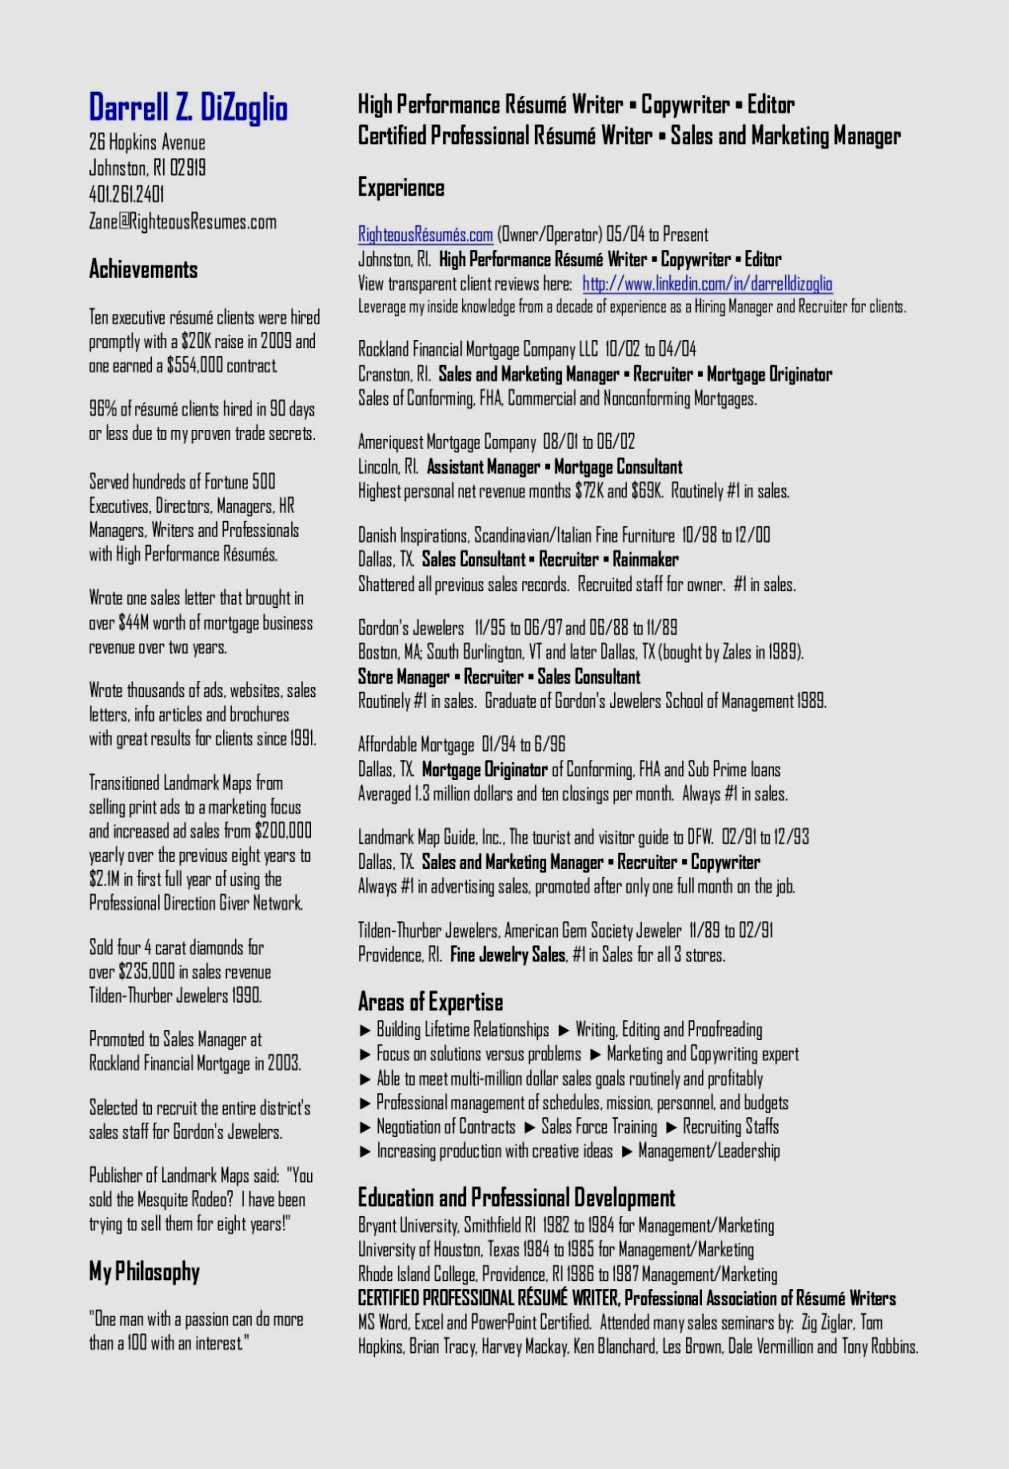 Professional Resume Sample - 20 Fresh Resume Template Professional Free Resume Templates